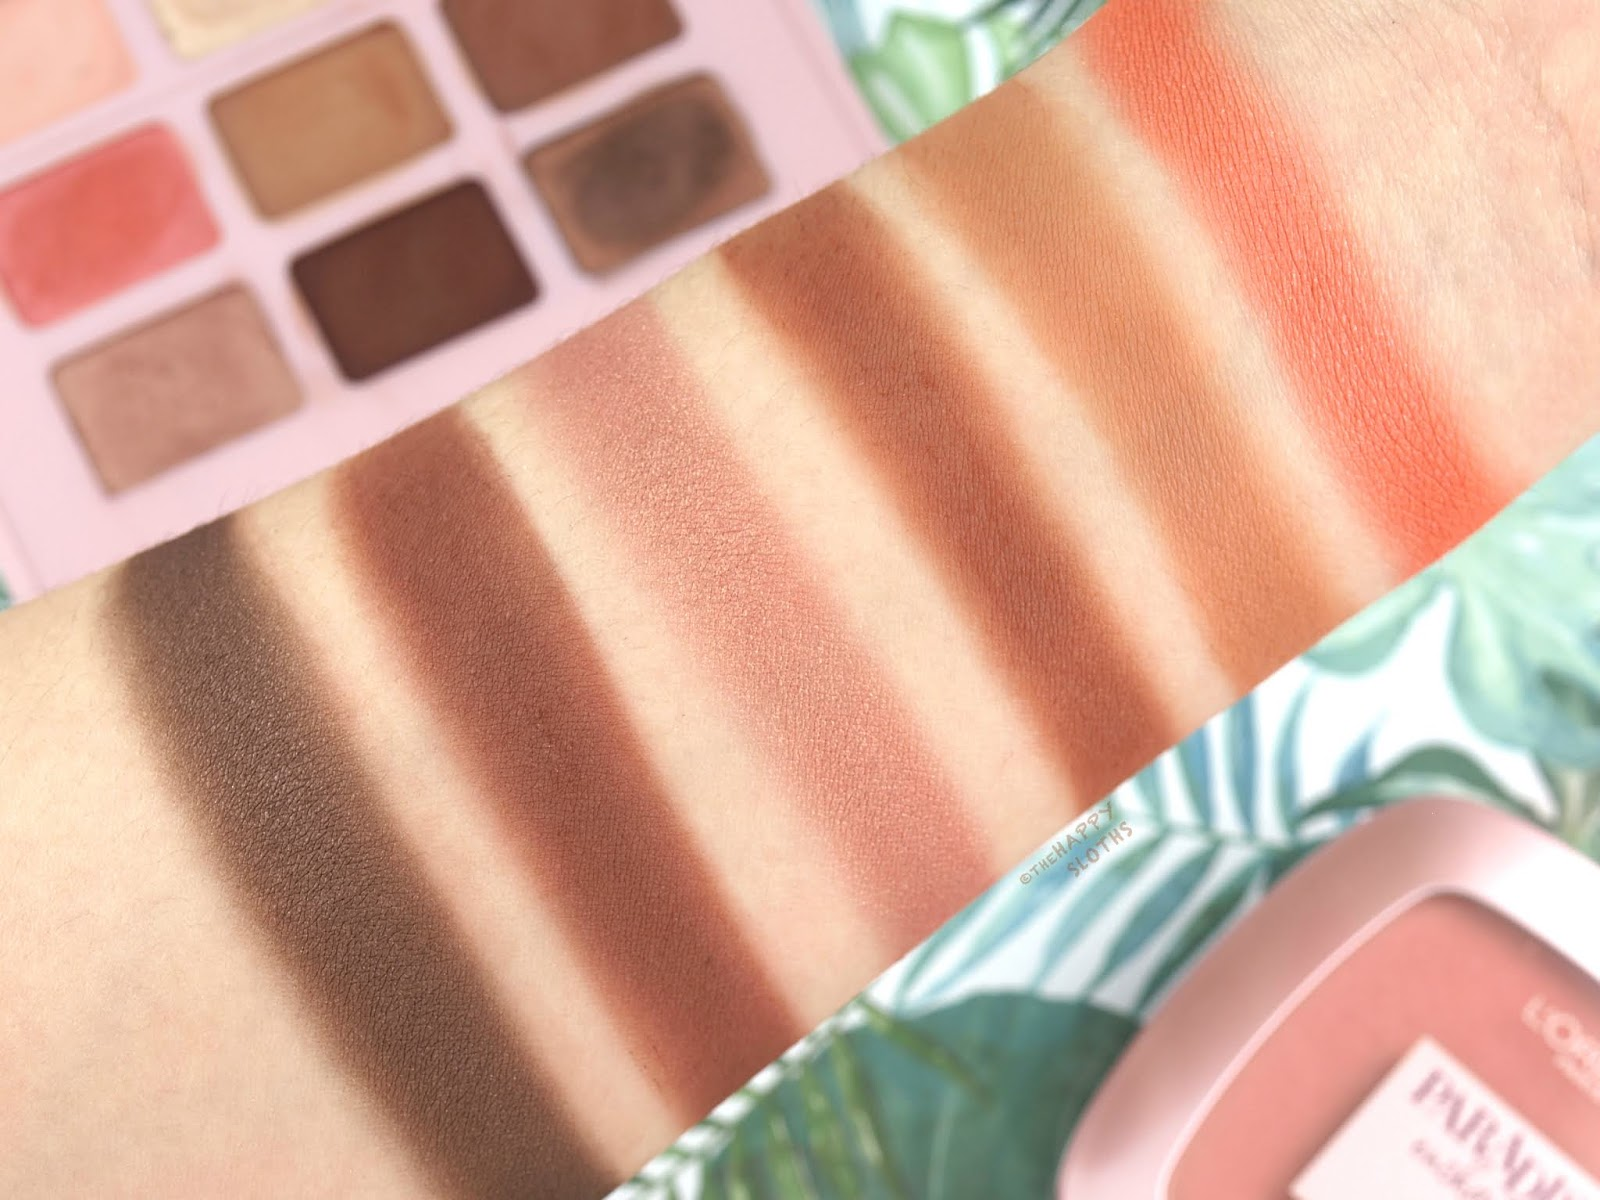 L'Oreal | Paradise Enchanted Scented Eyeshadow Palette: Review and Swatches